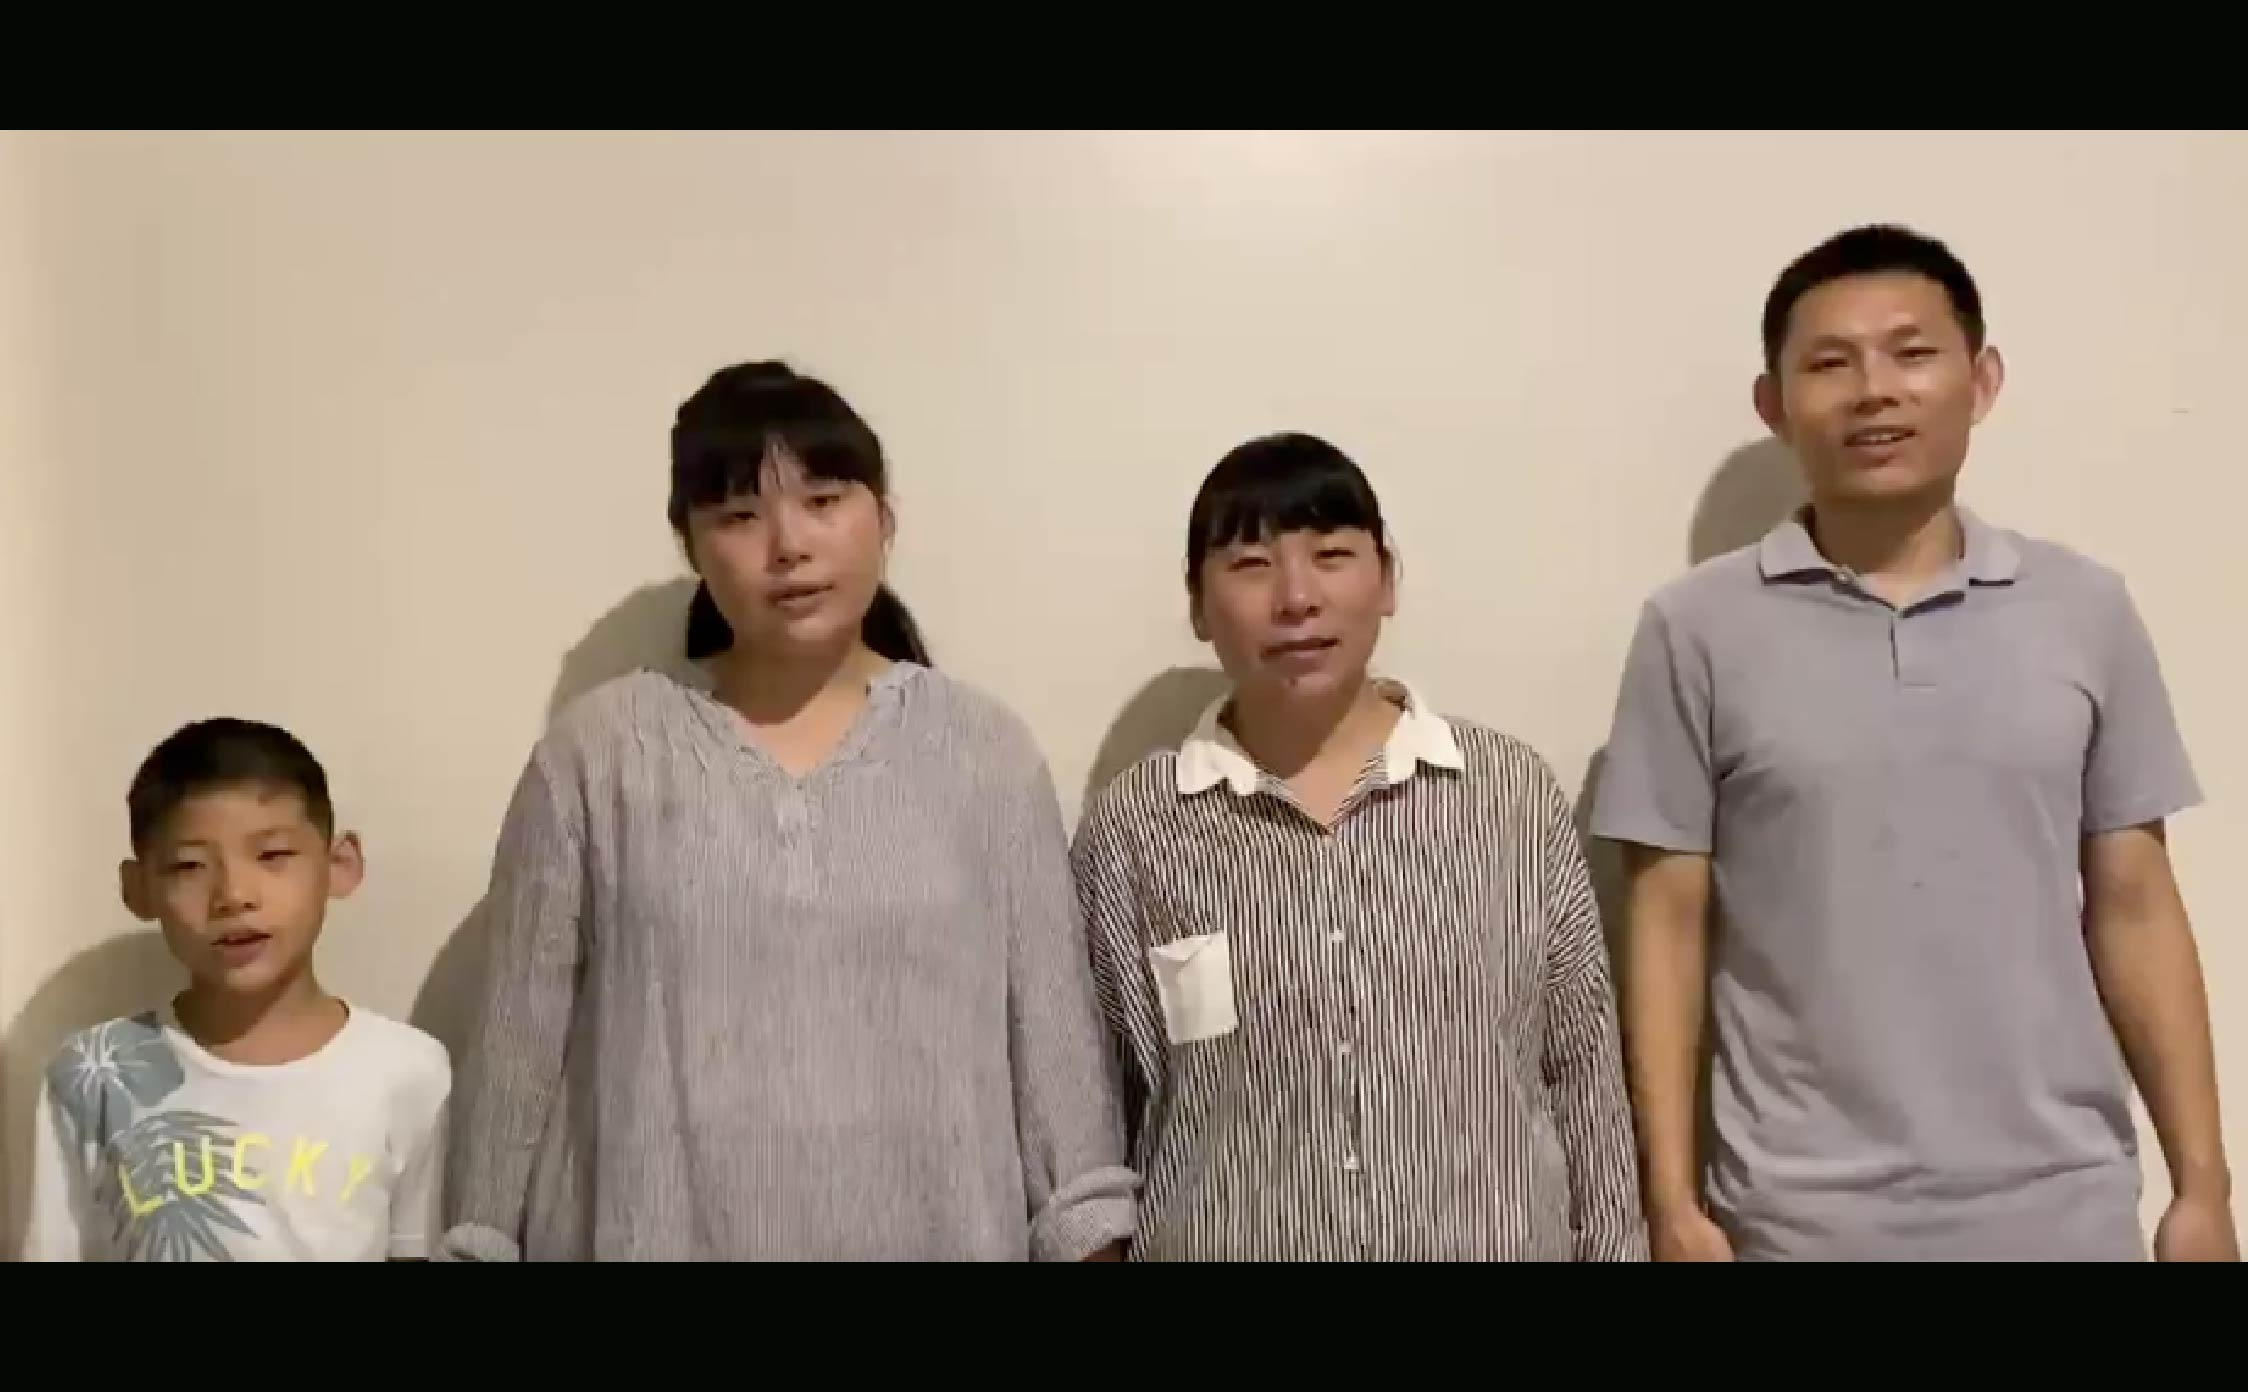 [VIDEO] This Amazing Chinese Immigrant Family Just Shared Their Touching Prayer for Trump and Melania